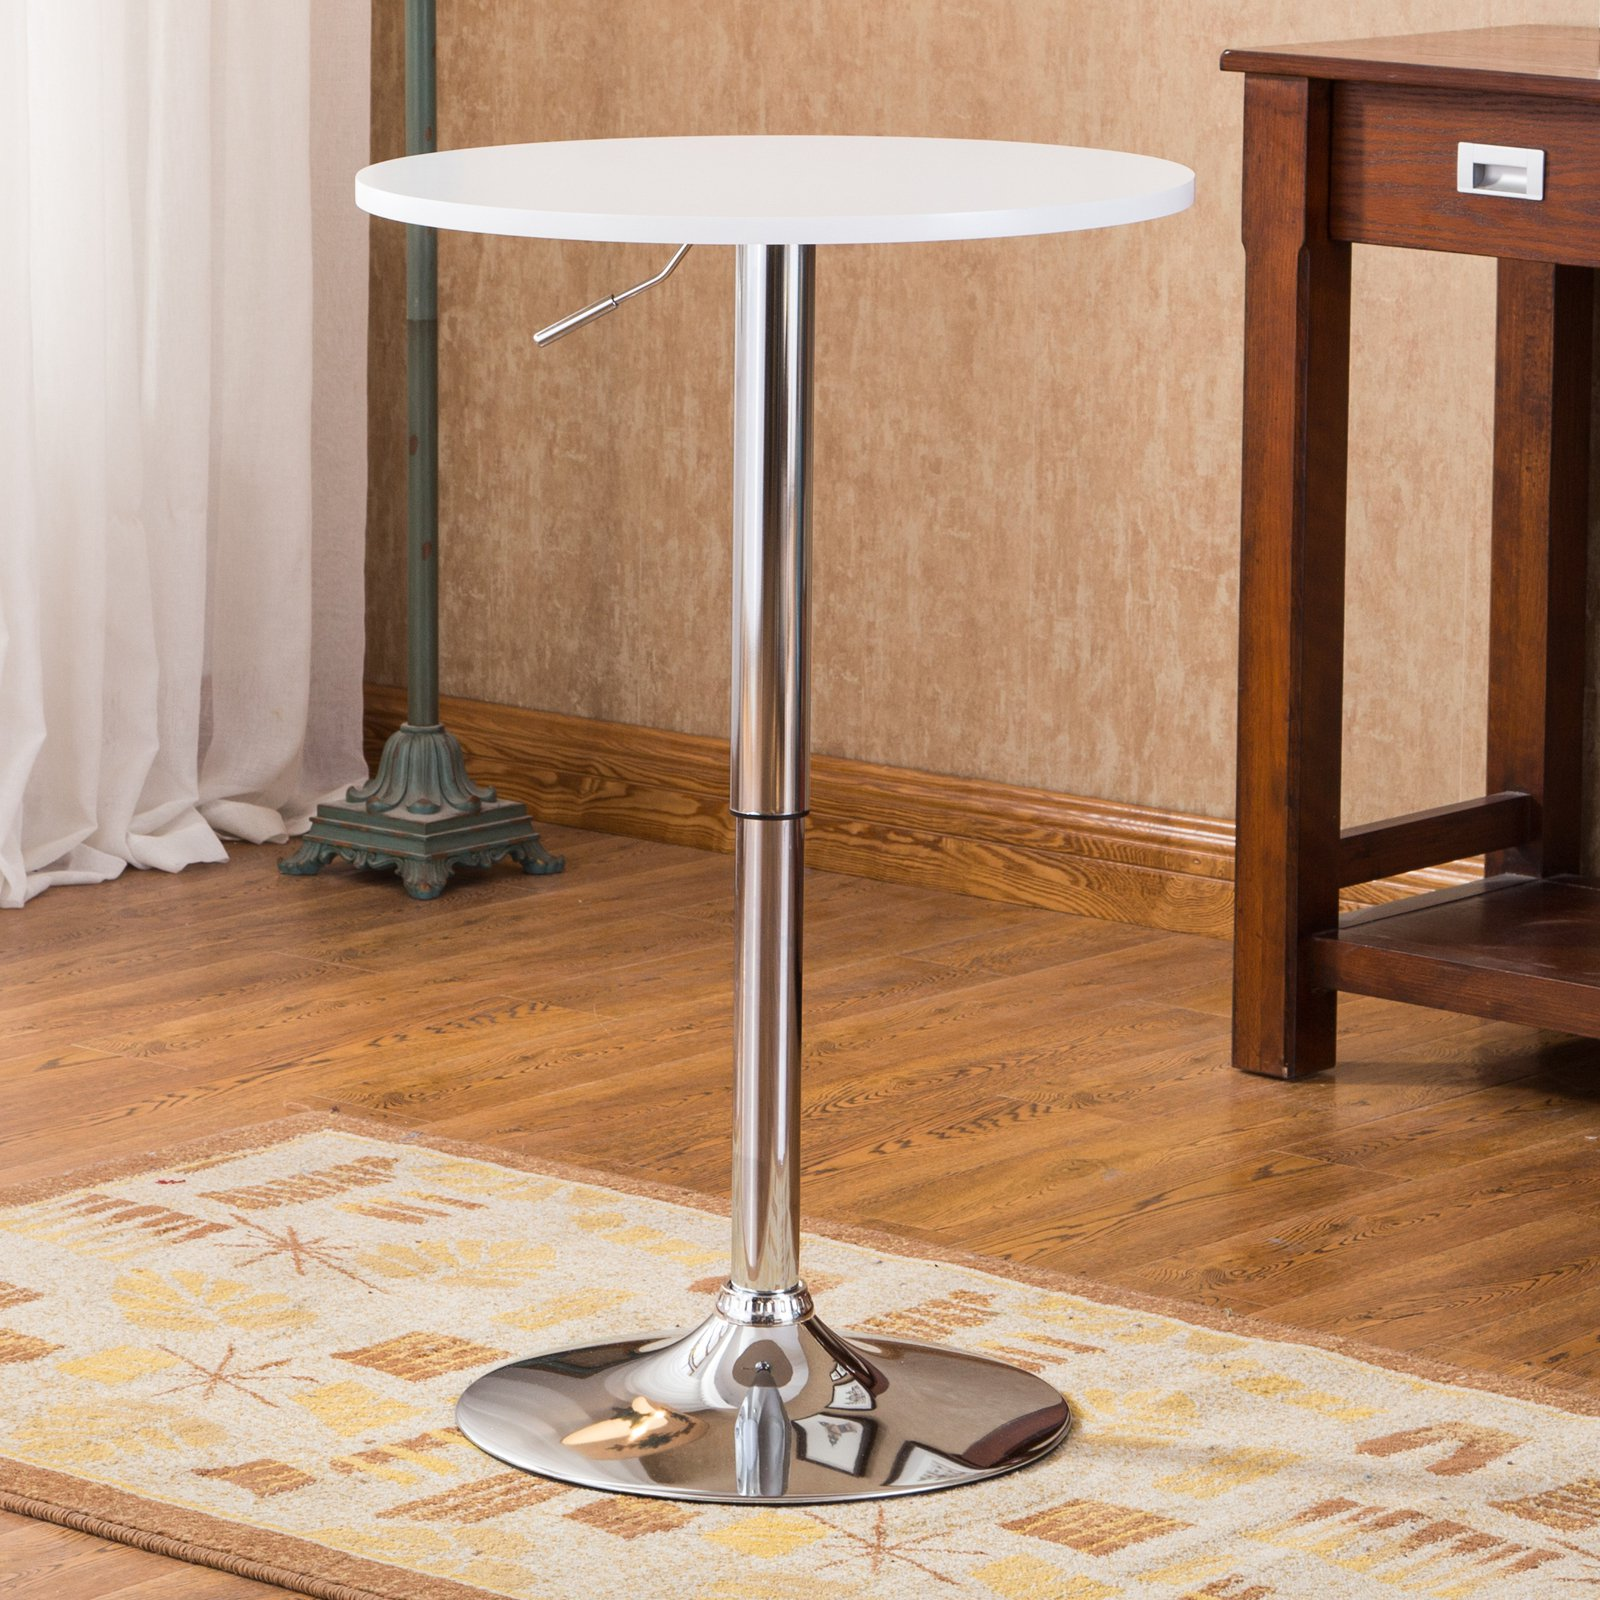 Roundhill Adjustable Height Wood and Chrome Metal Bar Table, Multiple Colors Available